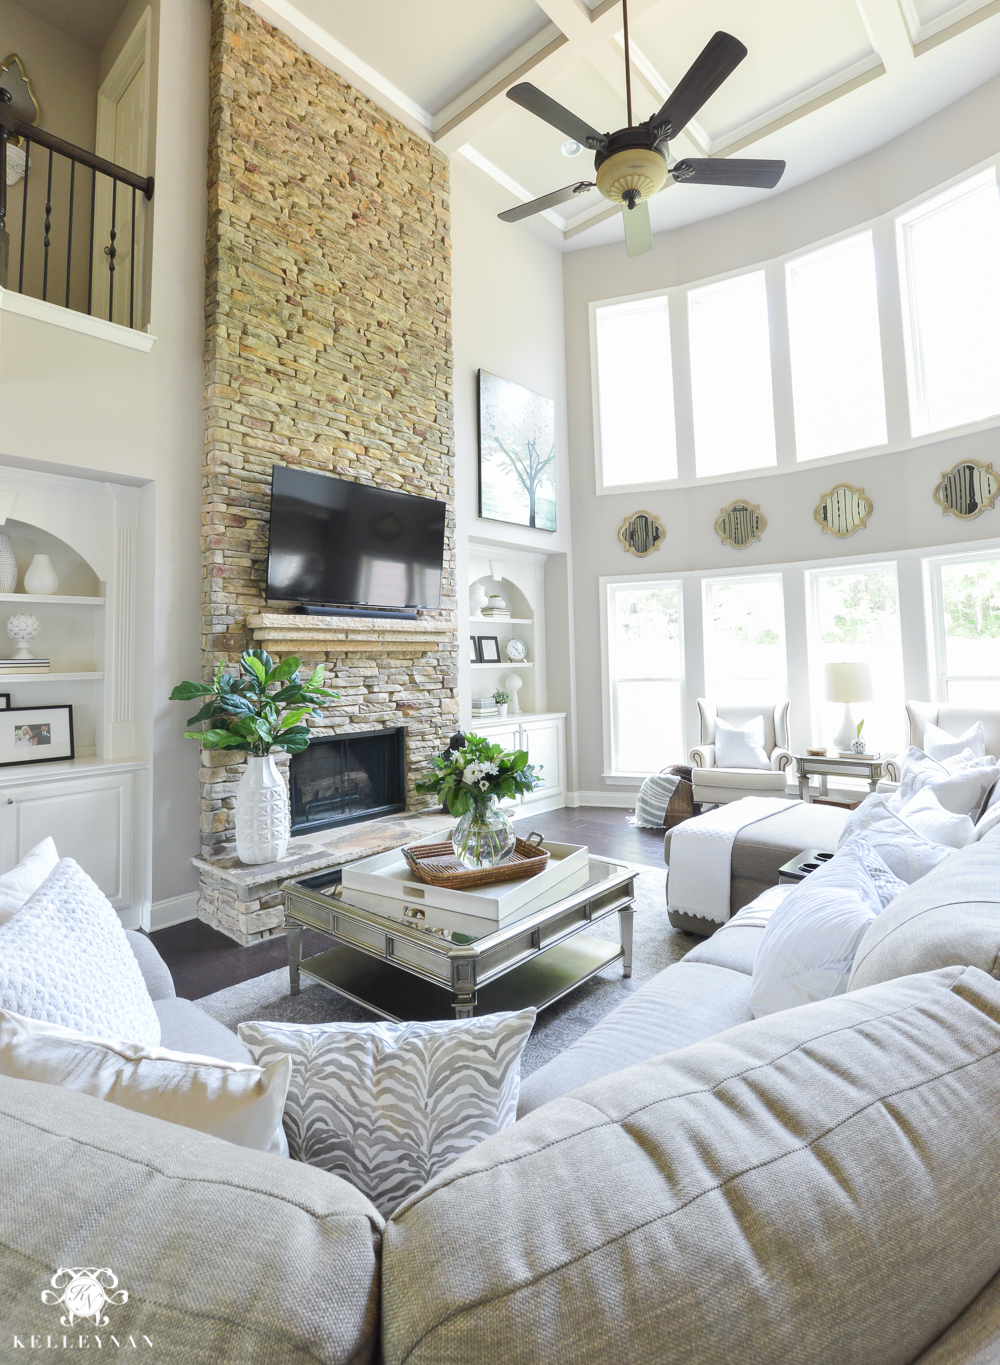 Shades of Summer Home Tour with Neutrals and Naturals- Two story living room with stacked stone fireplace and lazboy sectional